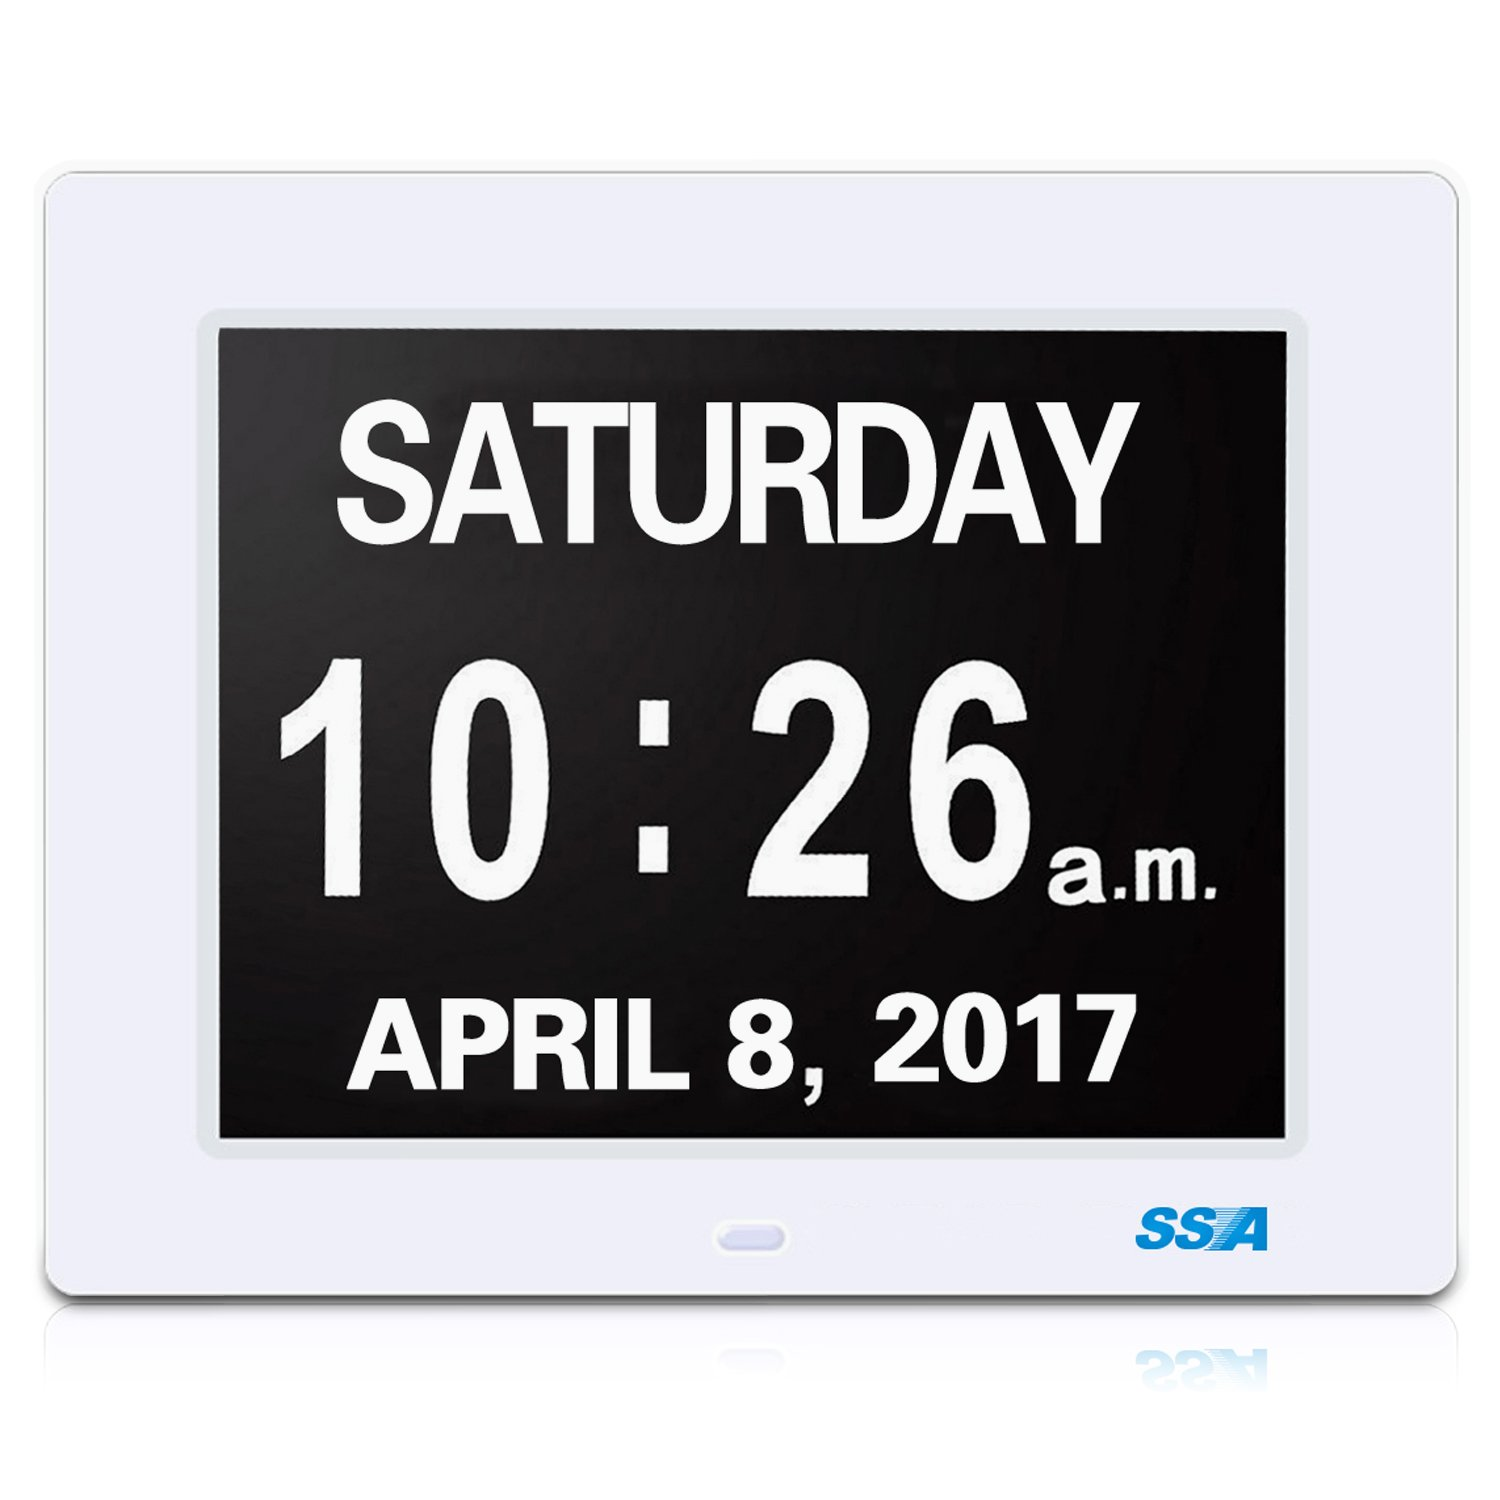 Digital Calendar.Details About Ssa Digital Calendar Day Clock With Large Clear Time Day And Date Display Wall